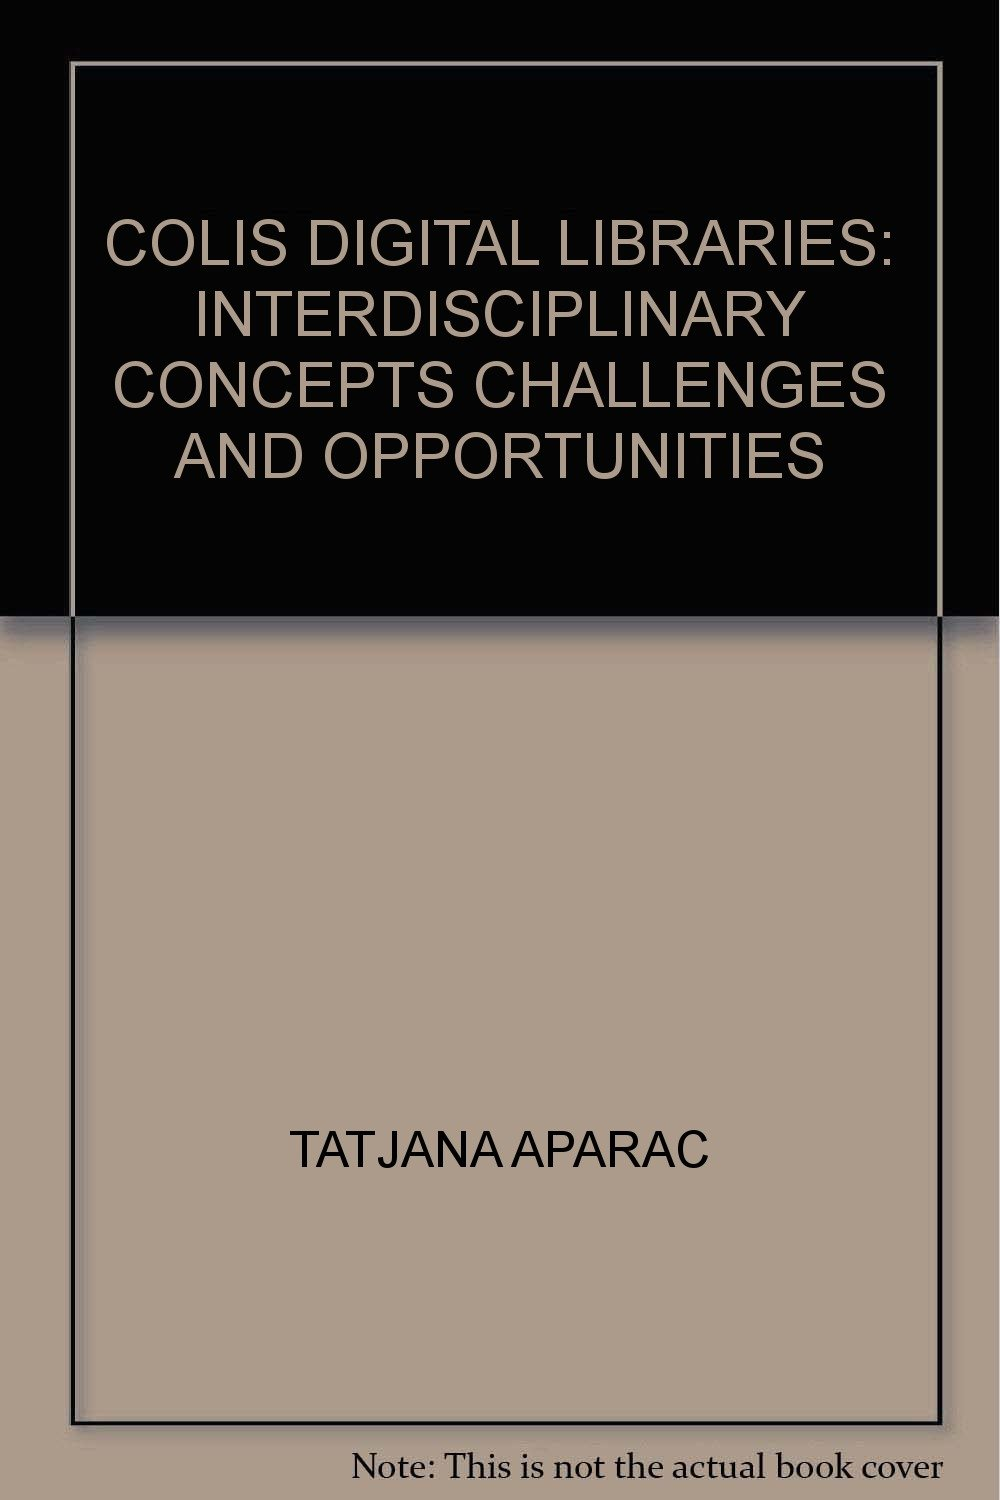 CoLIS Digital Libraries: Interdisciplinary Concepts Challenges and